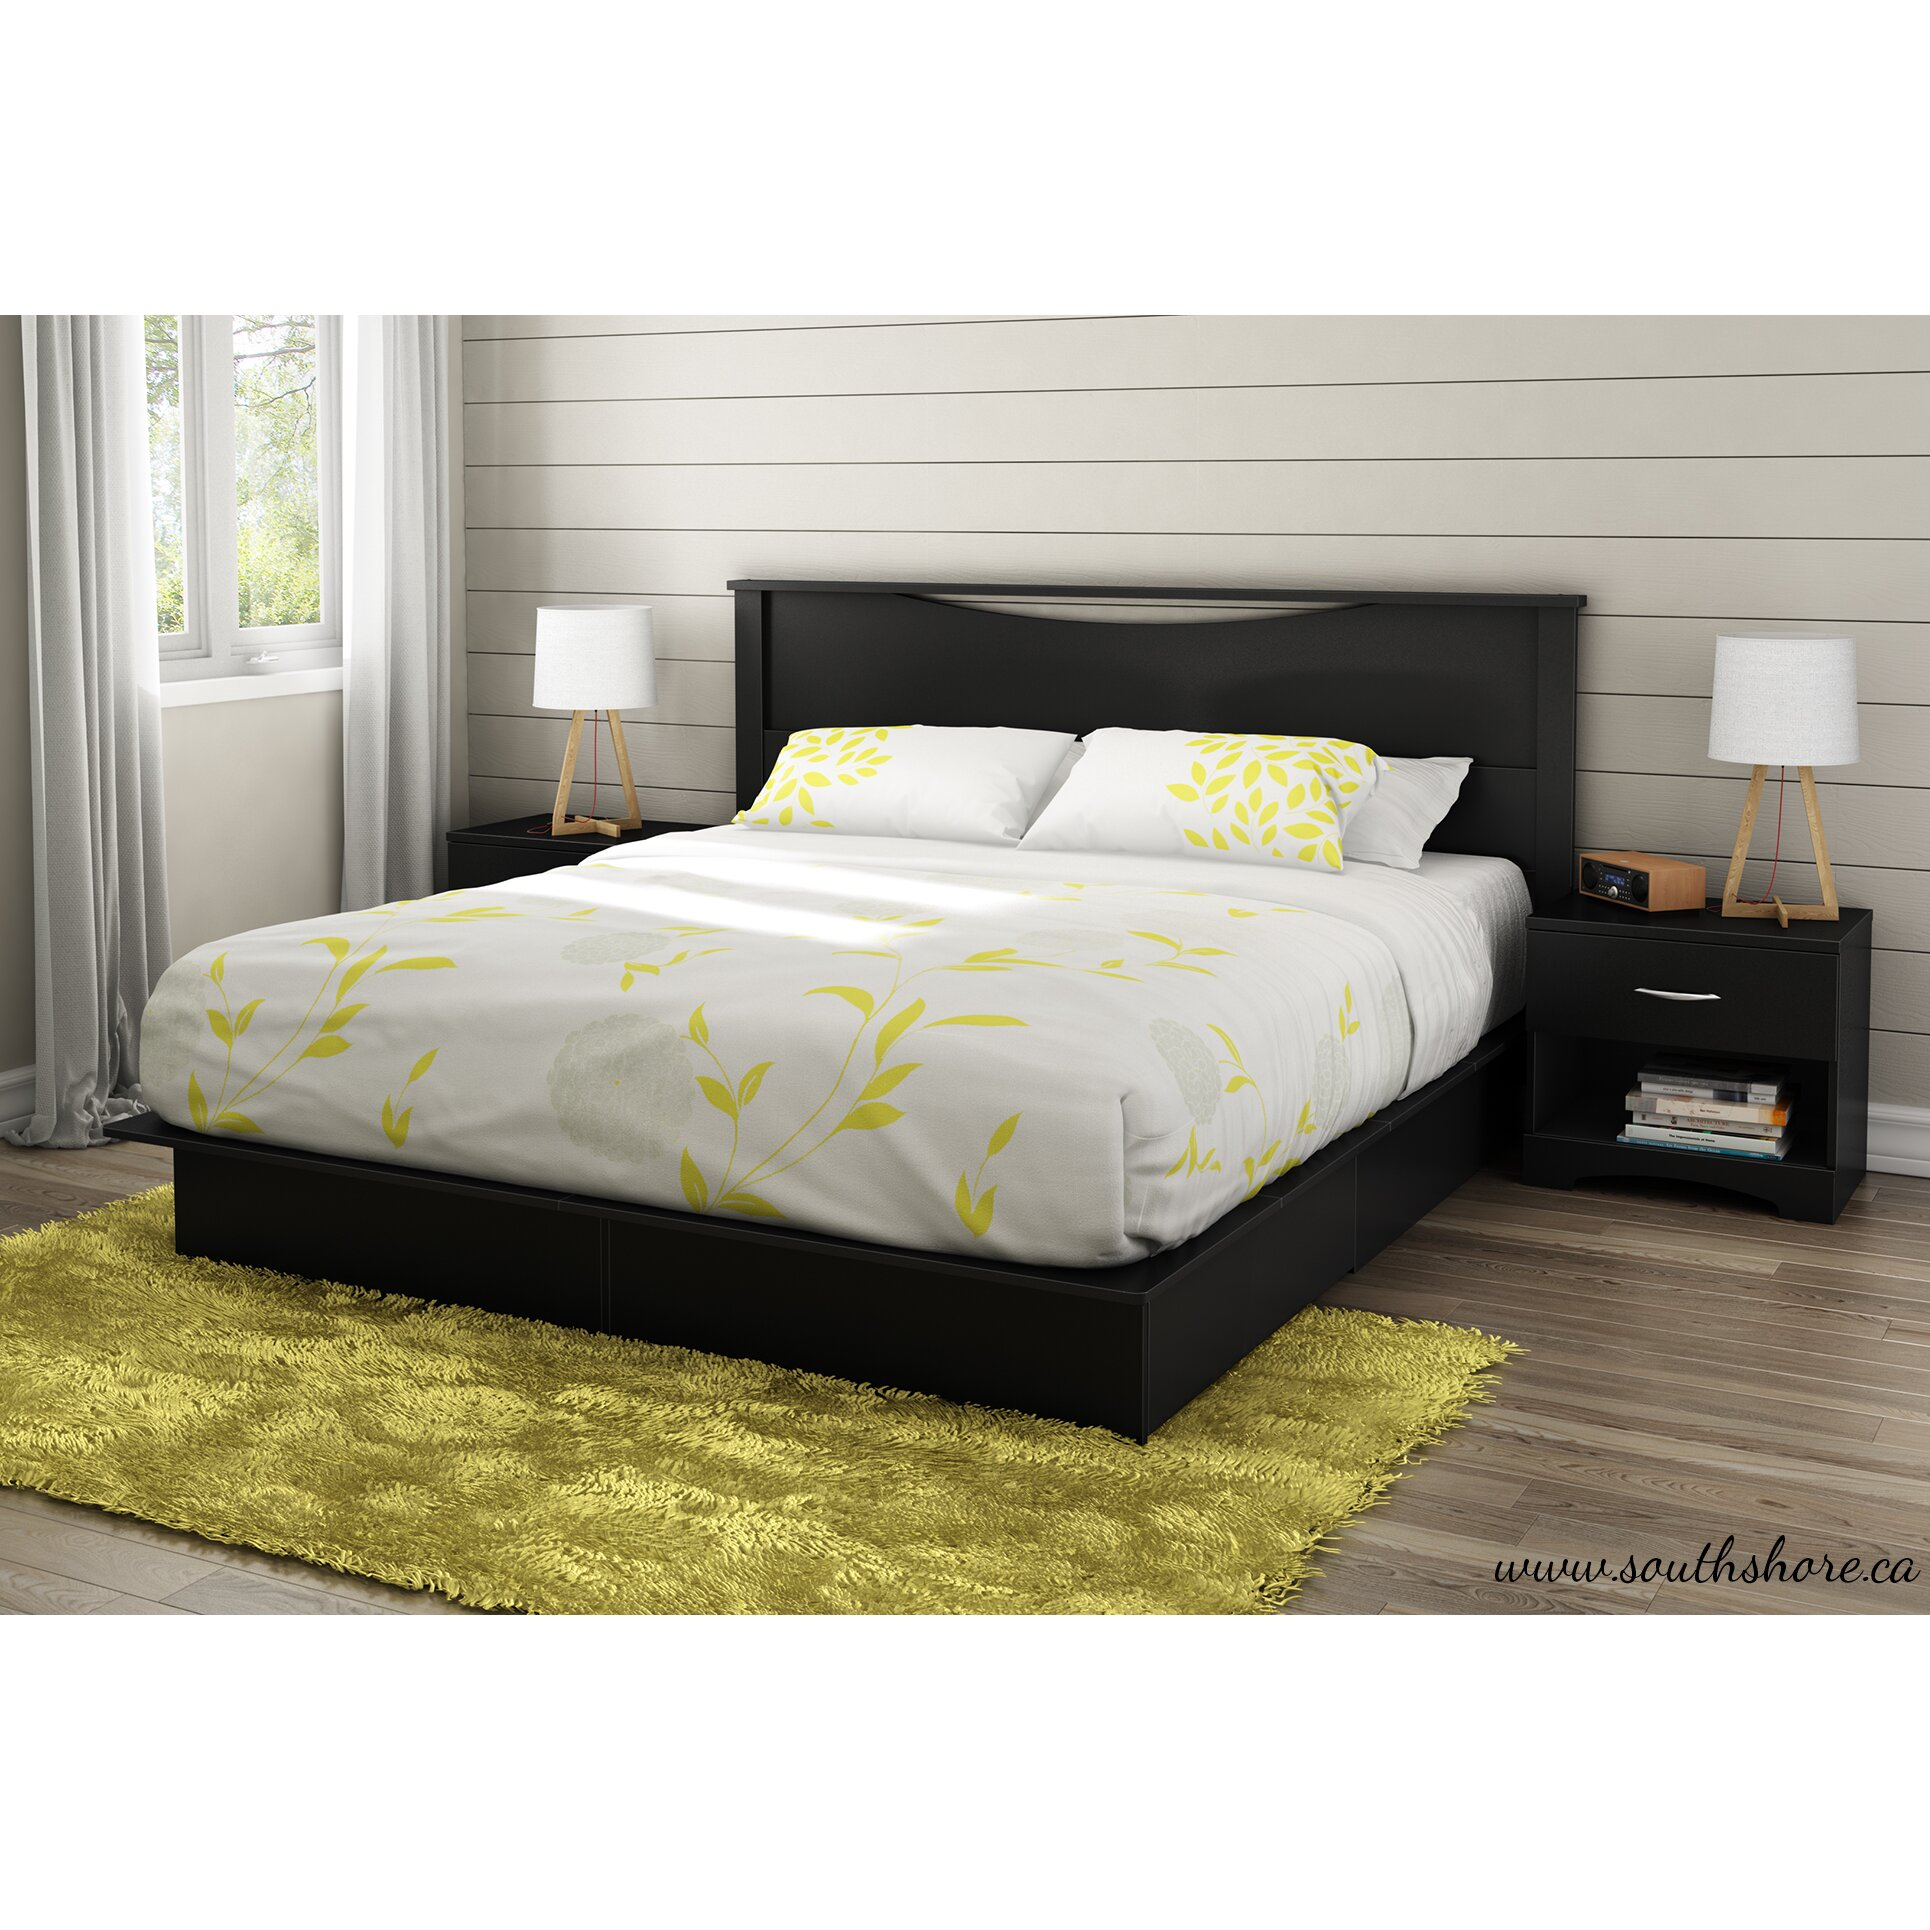 South shore king storage platform bed reviews wayfair Platform king bed